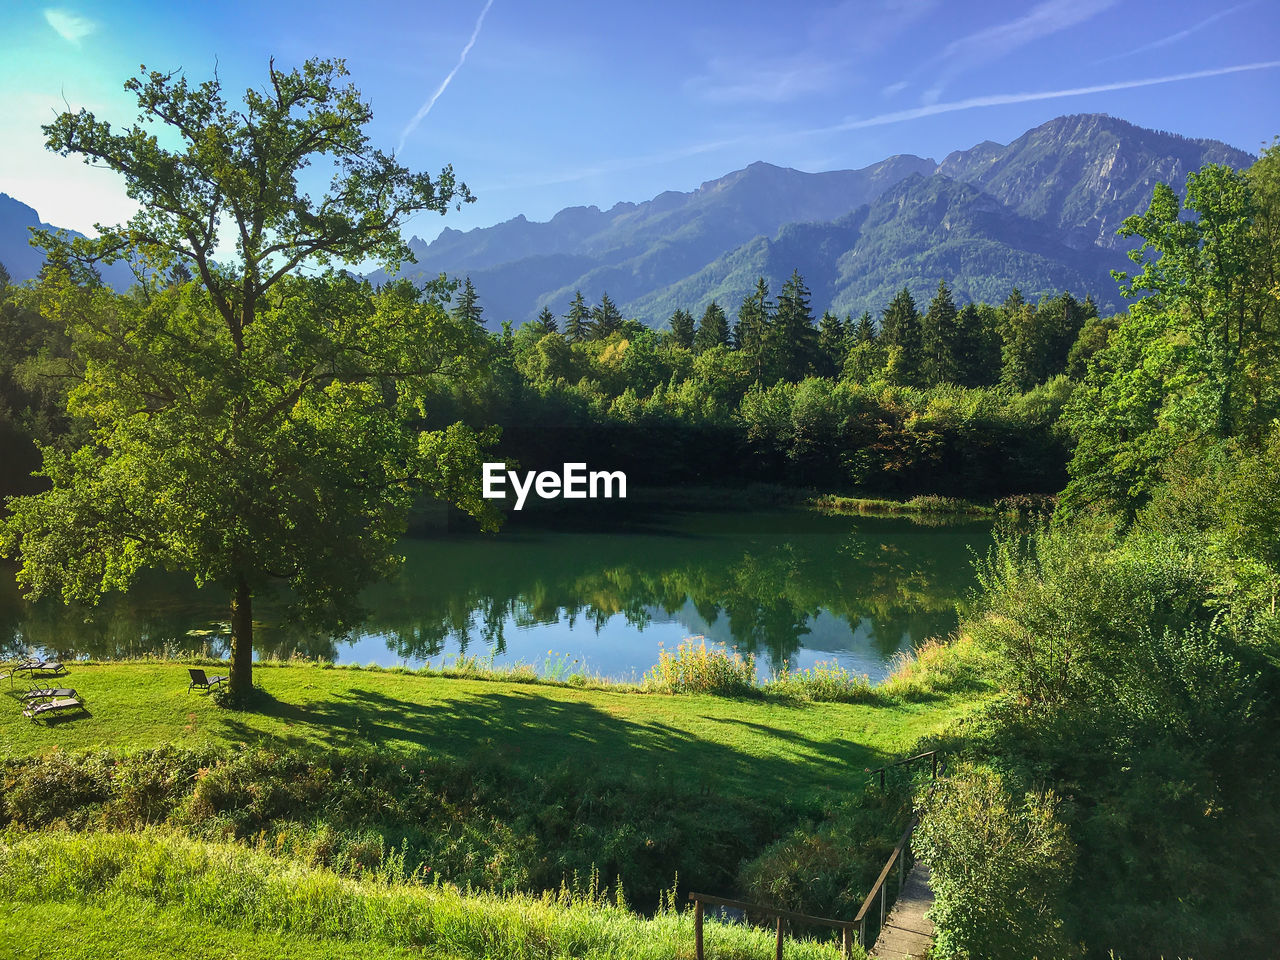 tree, plant, tranquility, tranquil scene, scenics - nature, beauty in nature, water, lake, green color, reflection, mountain, non-urban scene, nature, landscape, sky, environment, growth, day, grass, no people, outdoors